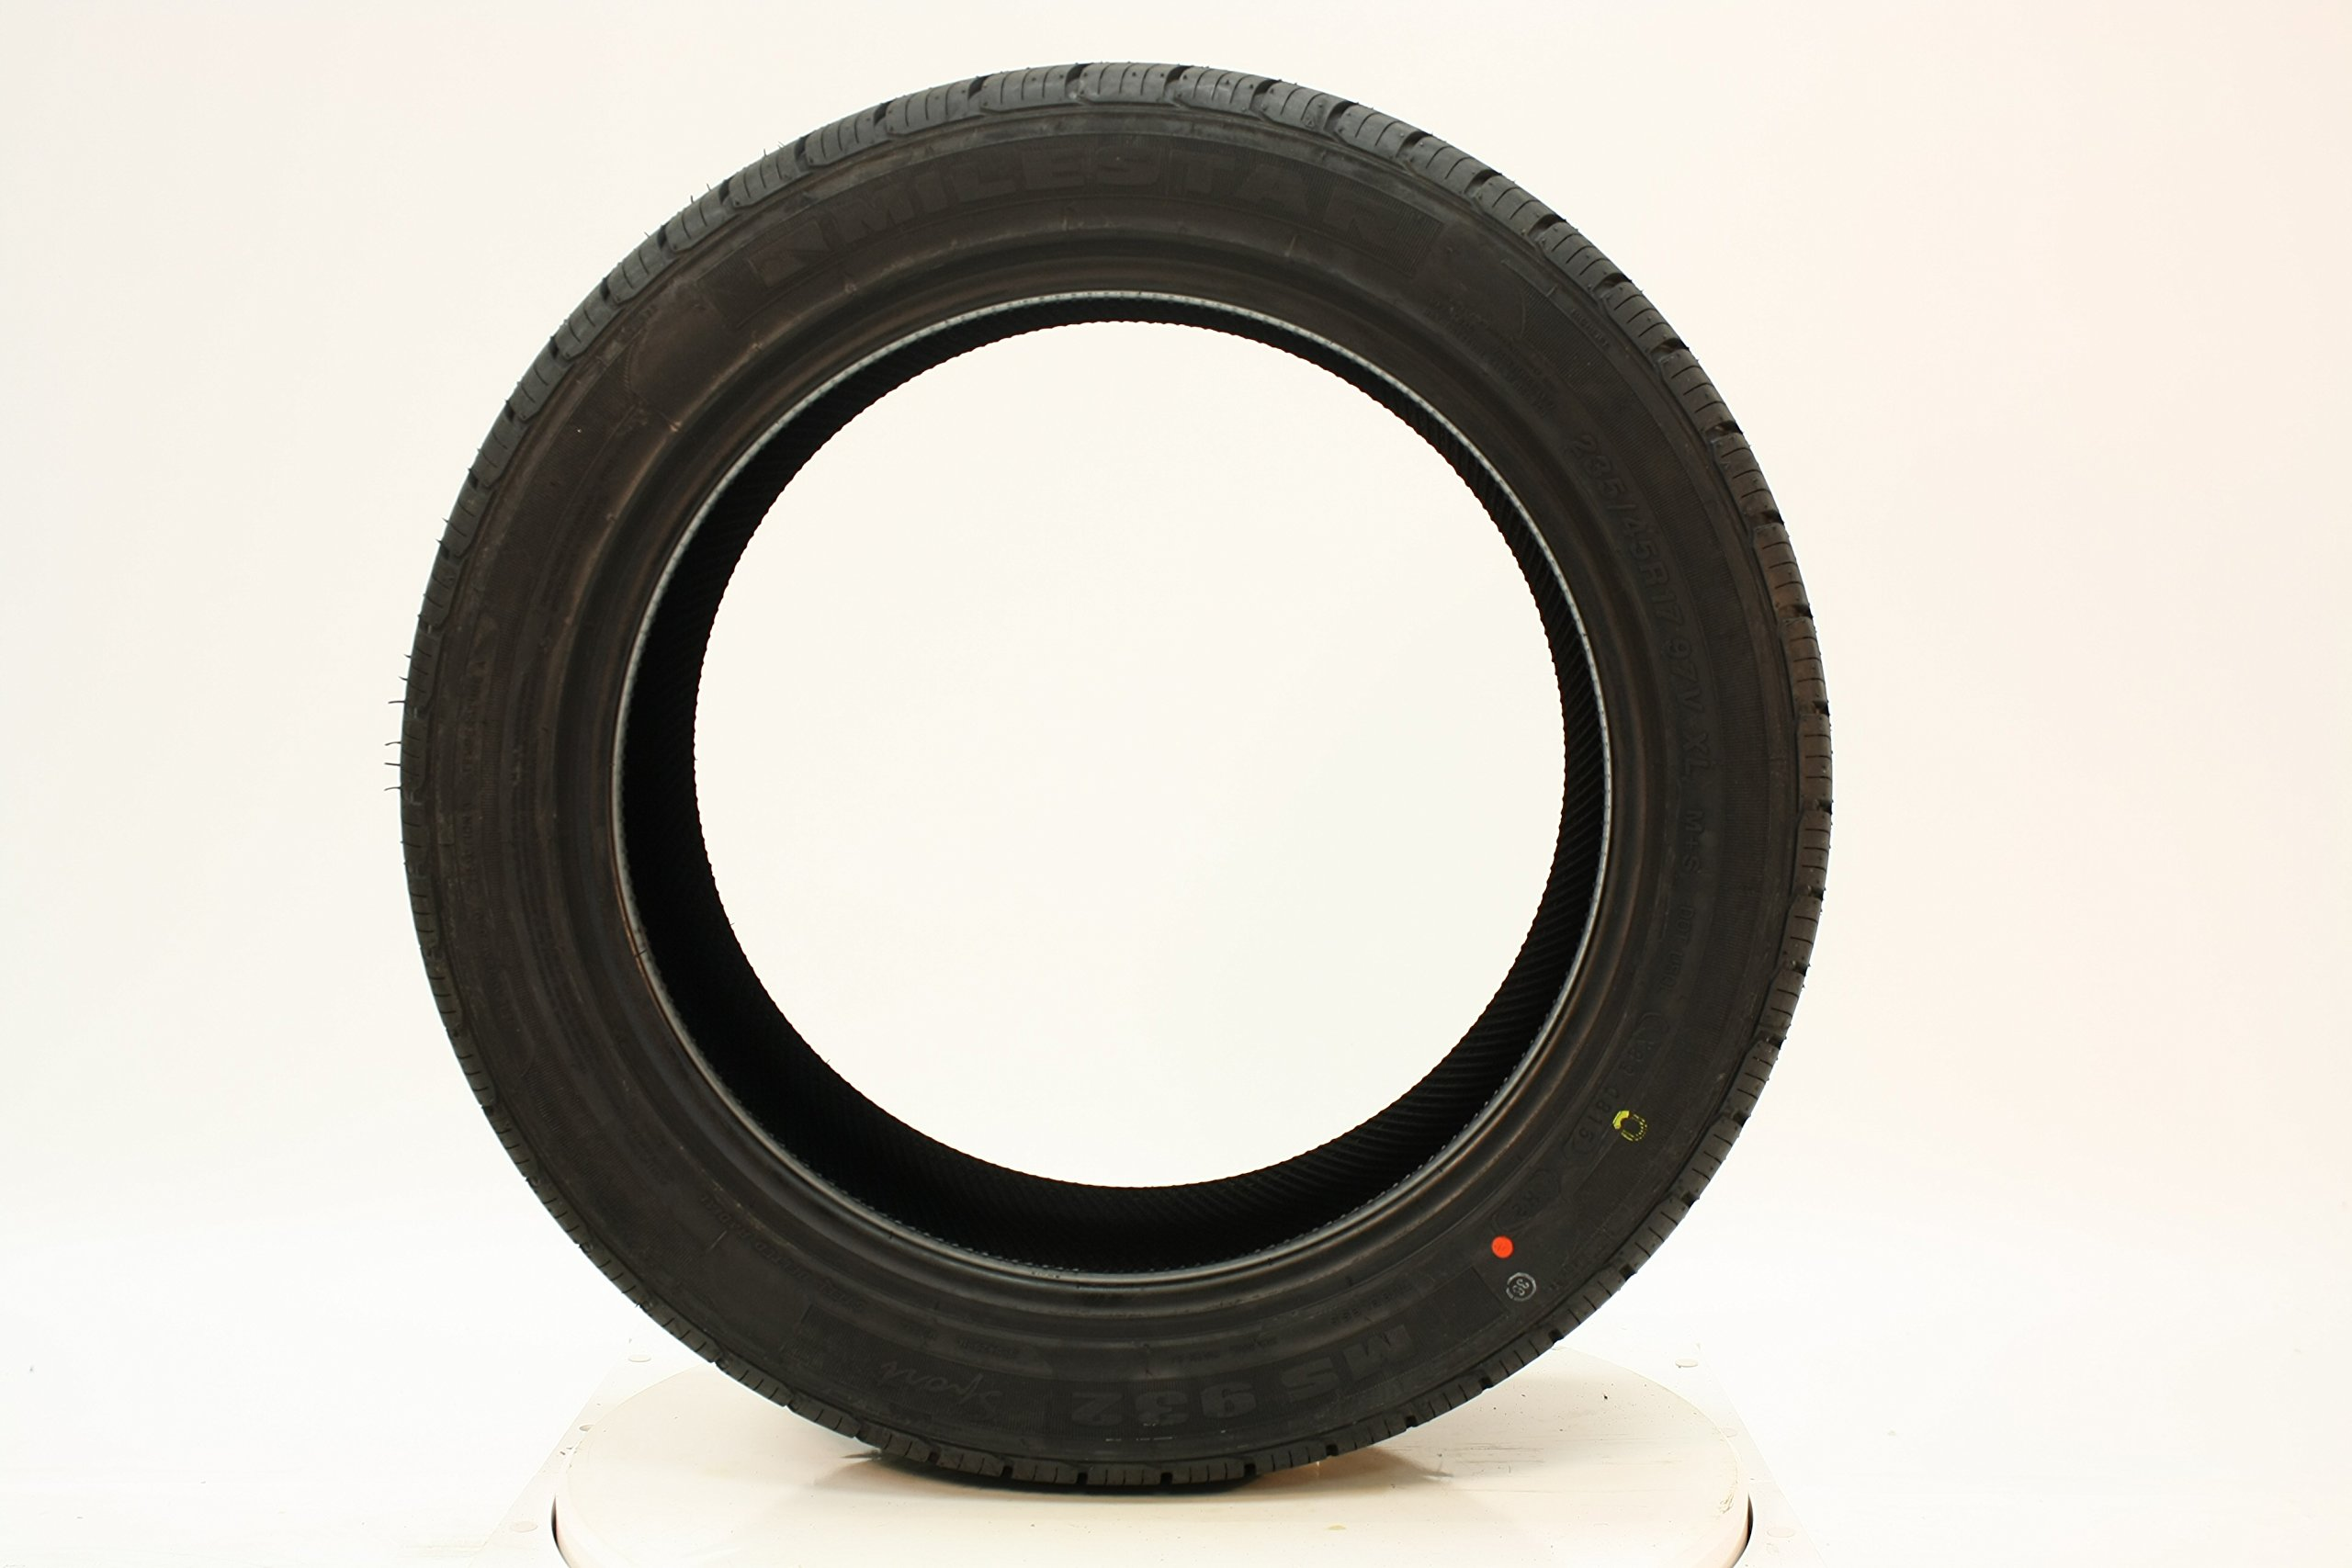 Milestar 24557001 MS932 Sport All-Season Radial Tire - 225/65R17 102V by Milestar (Image #2)